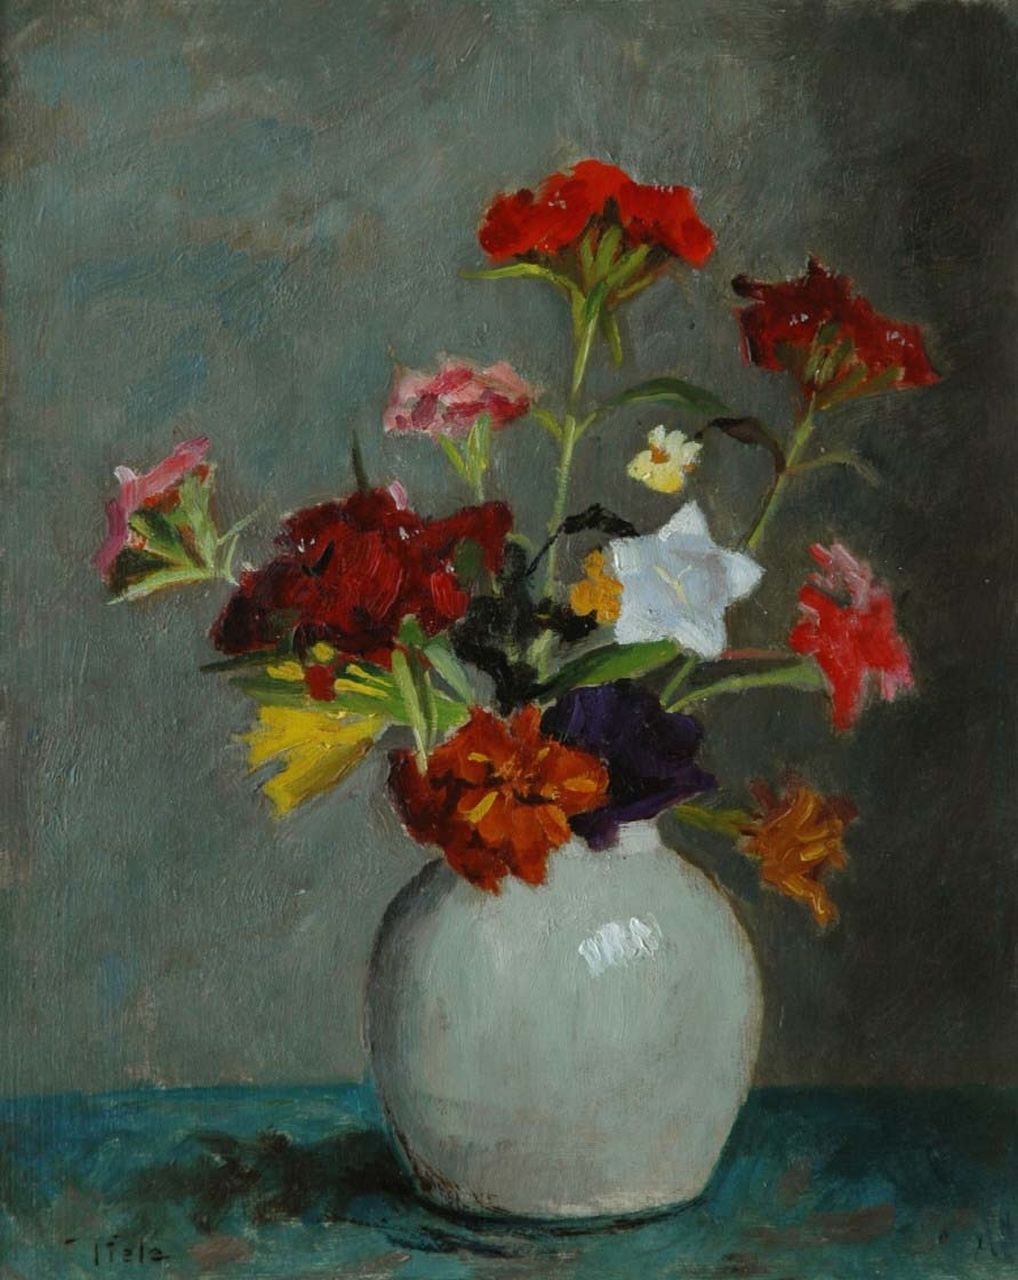 Tiele J.  | 'Jan' Cornelis Tiele, A coulorful bouquet, oil on board 30.0 x 24.0 cm, signed l.l. and painted between 1945-1955